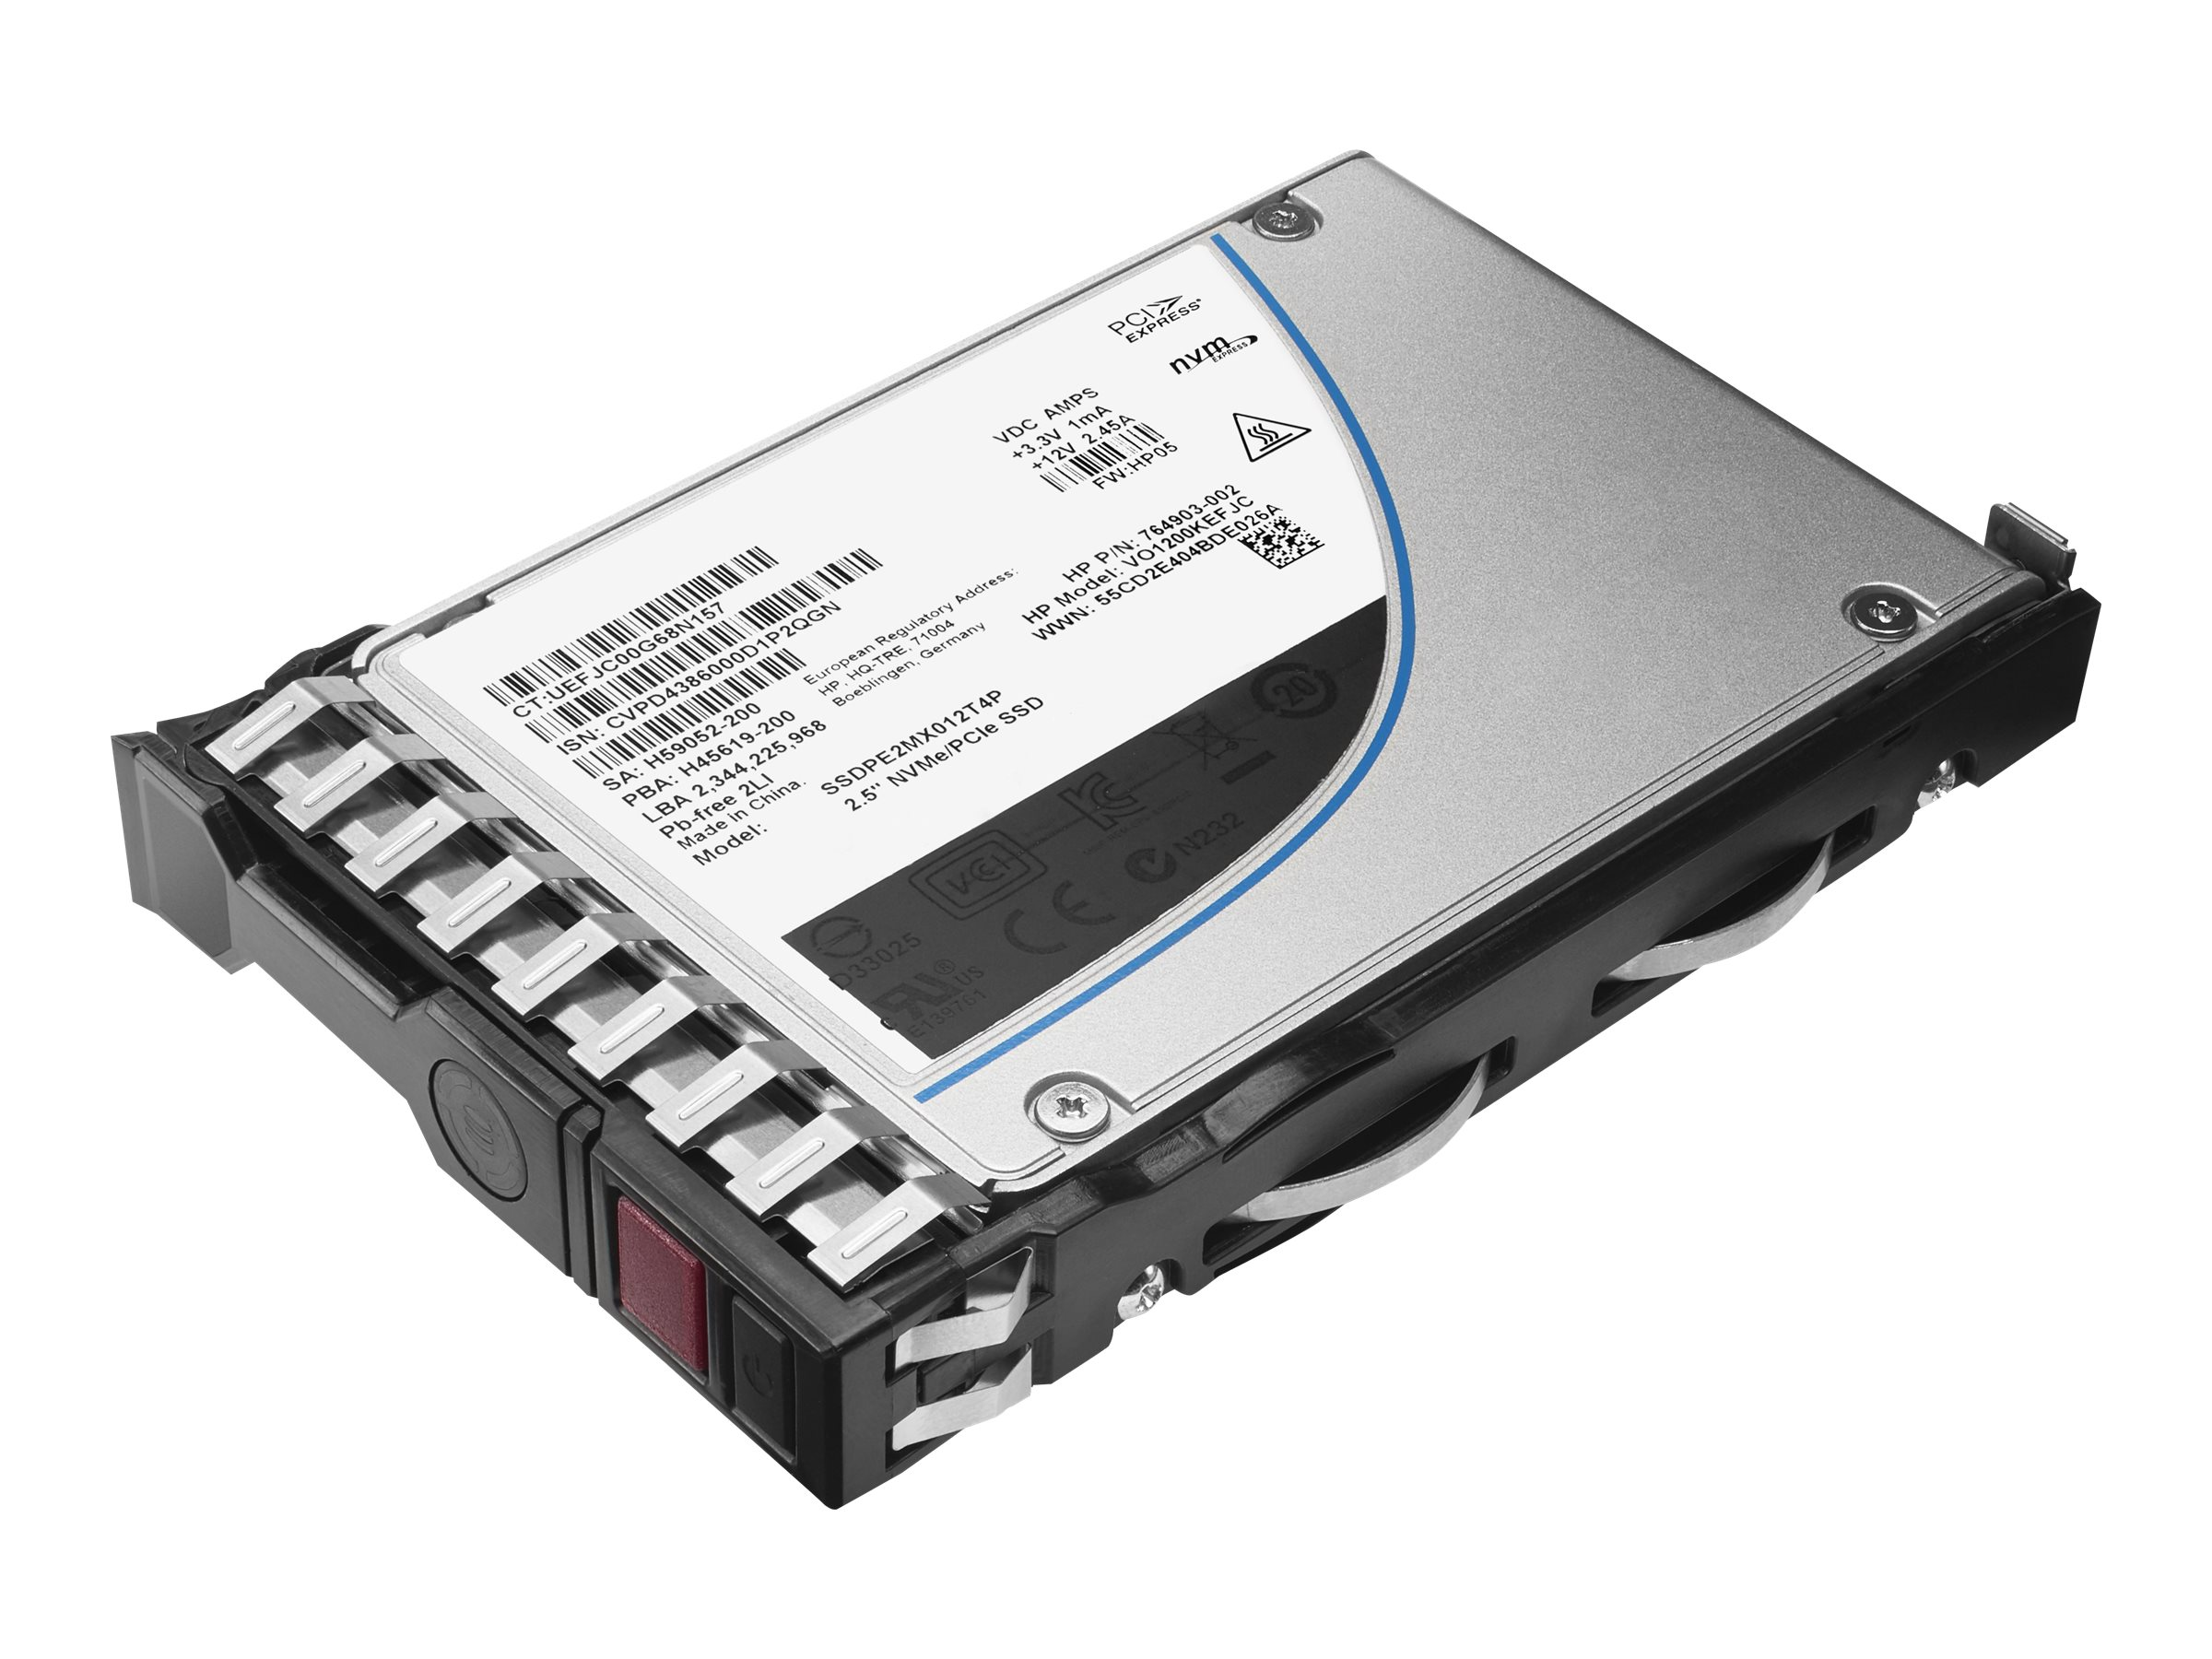 HPE 1.92TB SAS 12Gb s Read Intensive 2.5 Smart Carrier Internal Solid State Drive